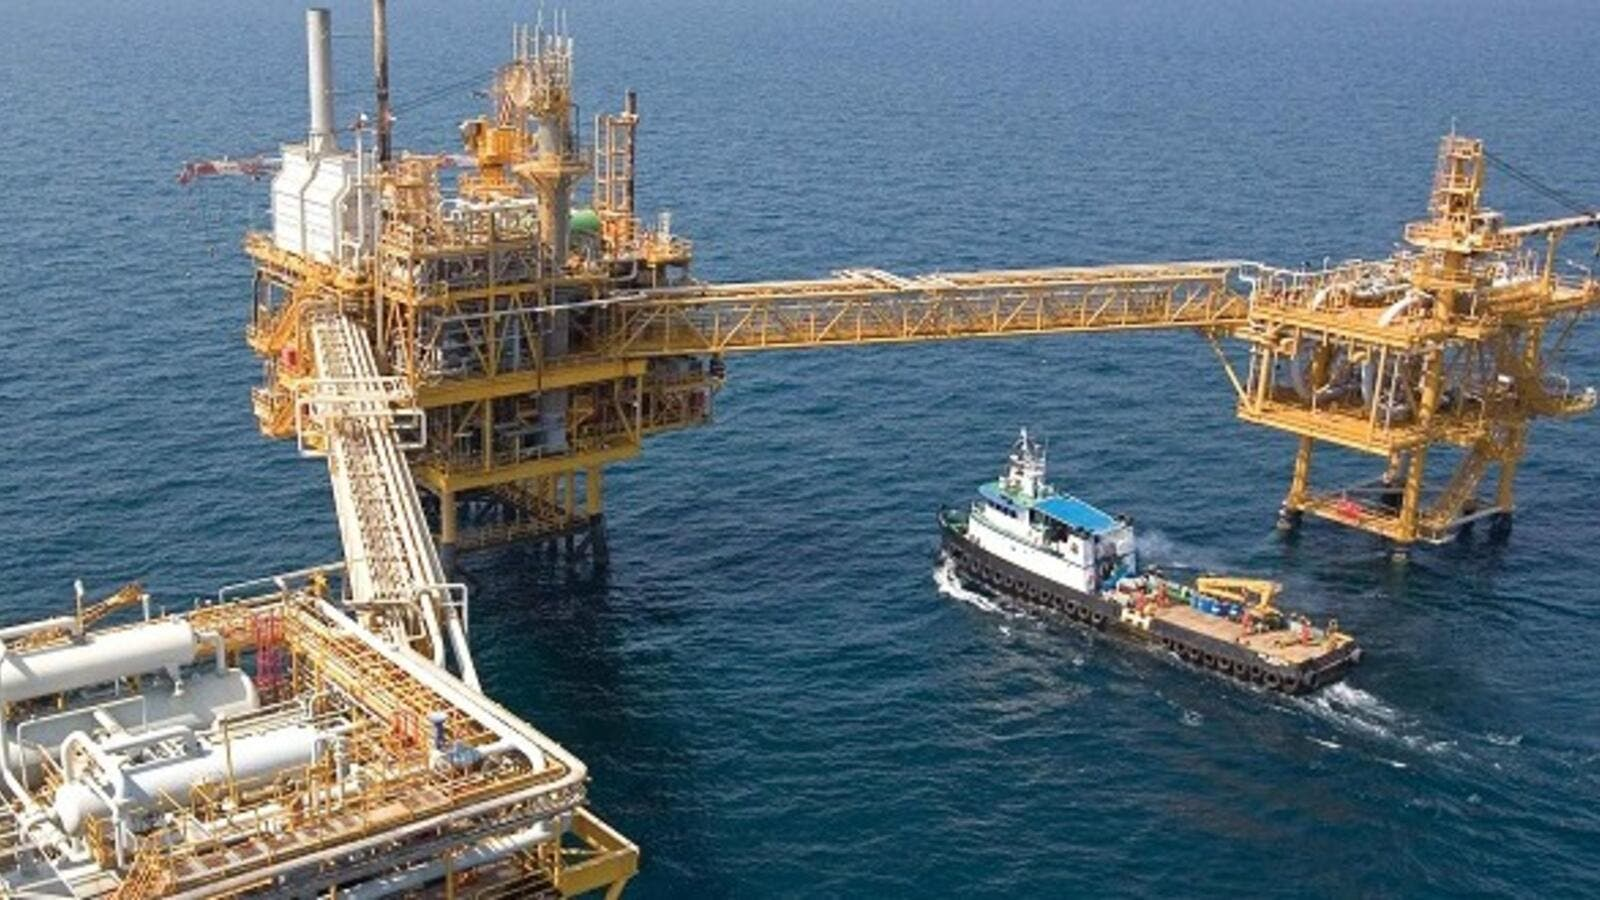 The Leviathan development plan calls for eight production wells to be drilled along with two pipelines. (File photo)